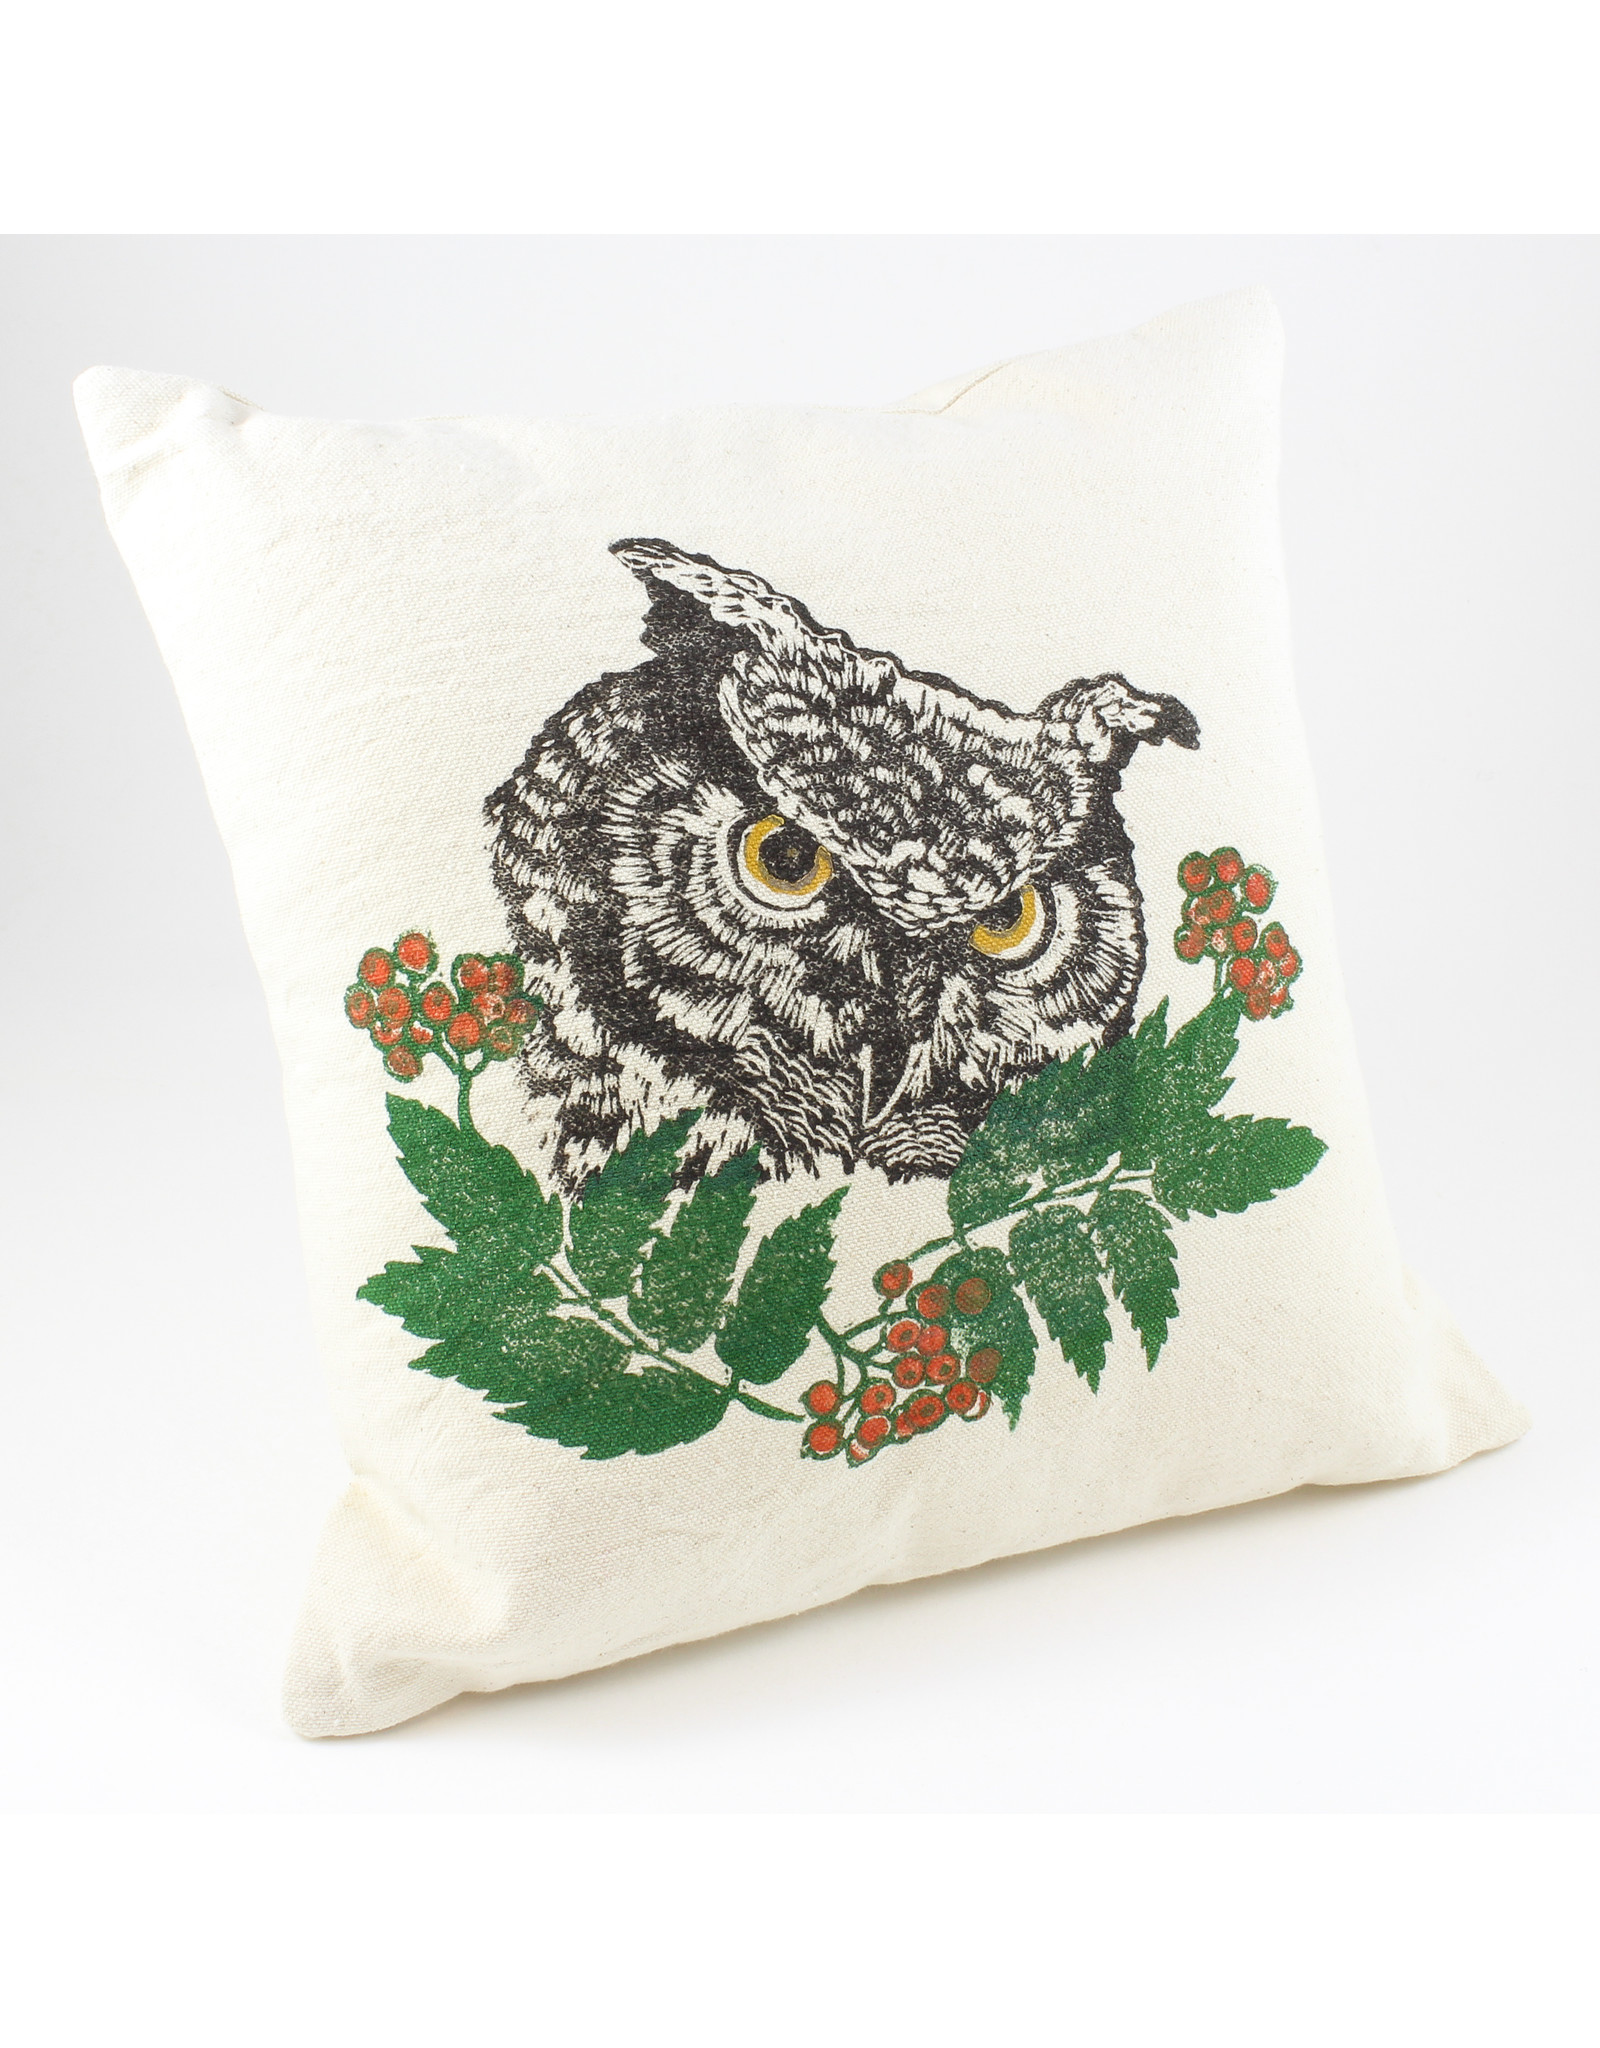 Cabot & Rose Block Printed Pillows (4 Styles) by Cabot & Rose